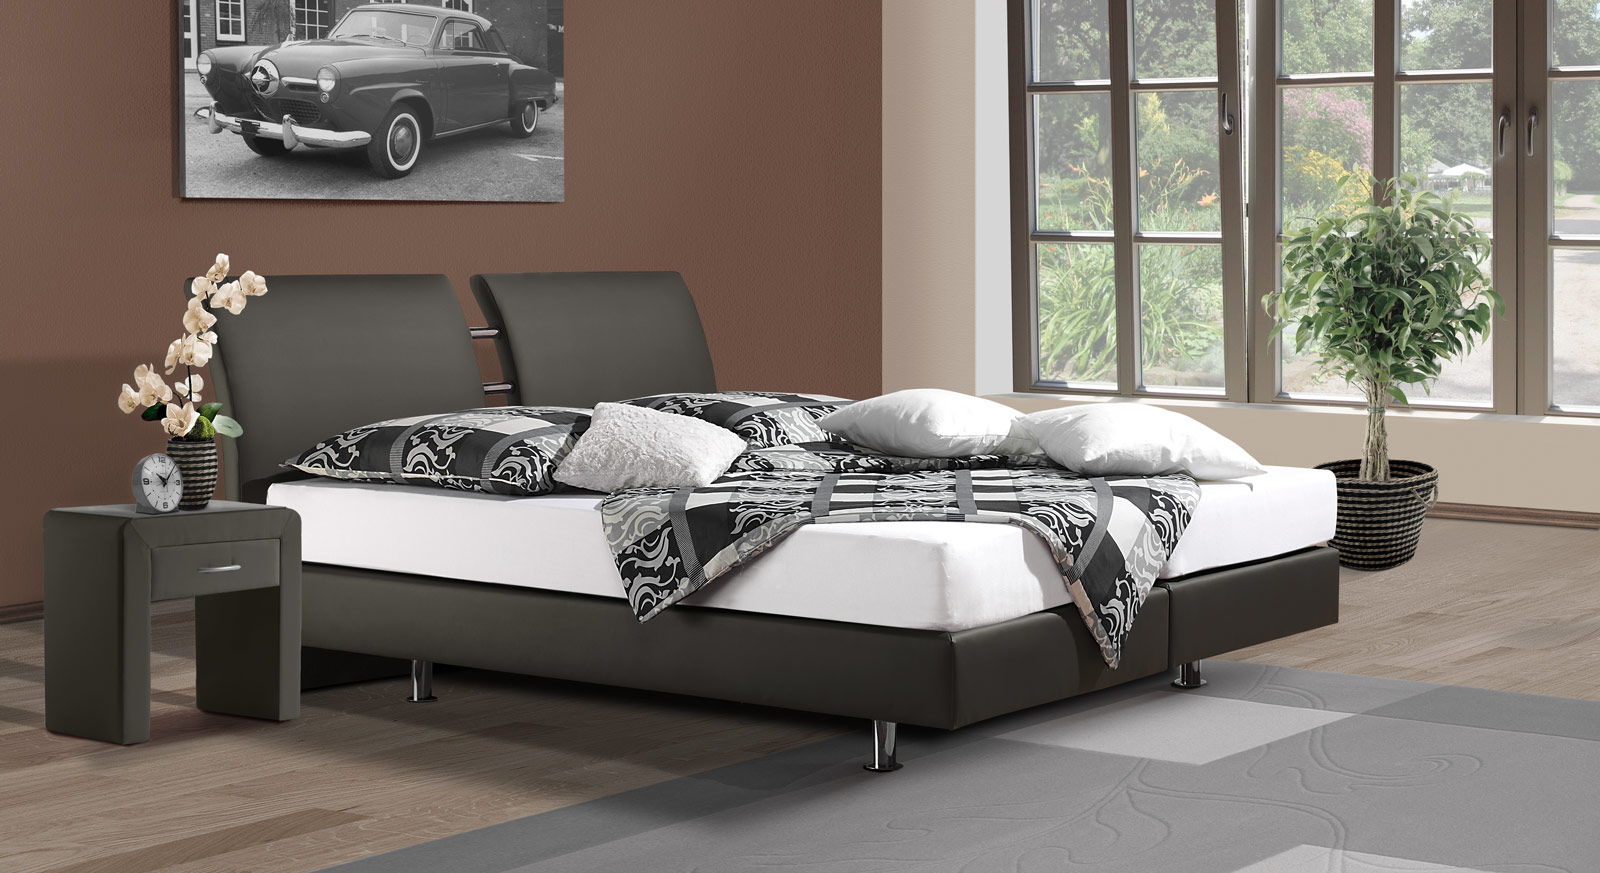 g nstiges boxspringbett aus kunstleder und chrom fernando. Black Bedroom Furniture Sets. Home Design Ideas